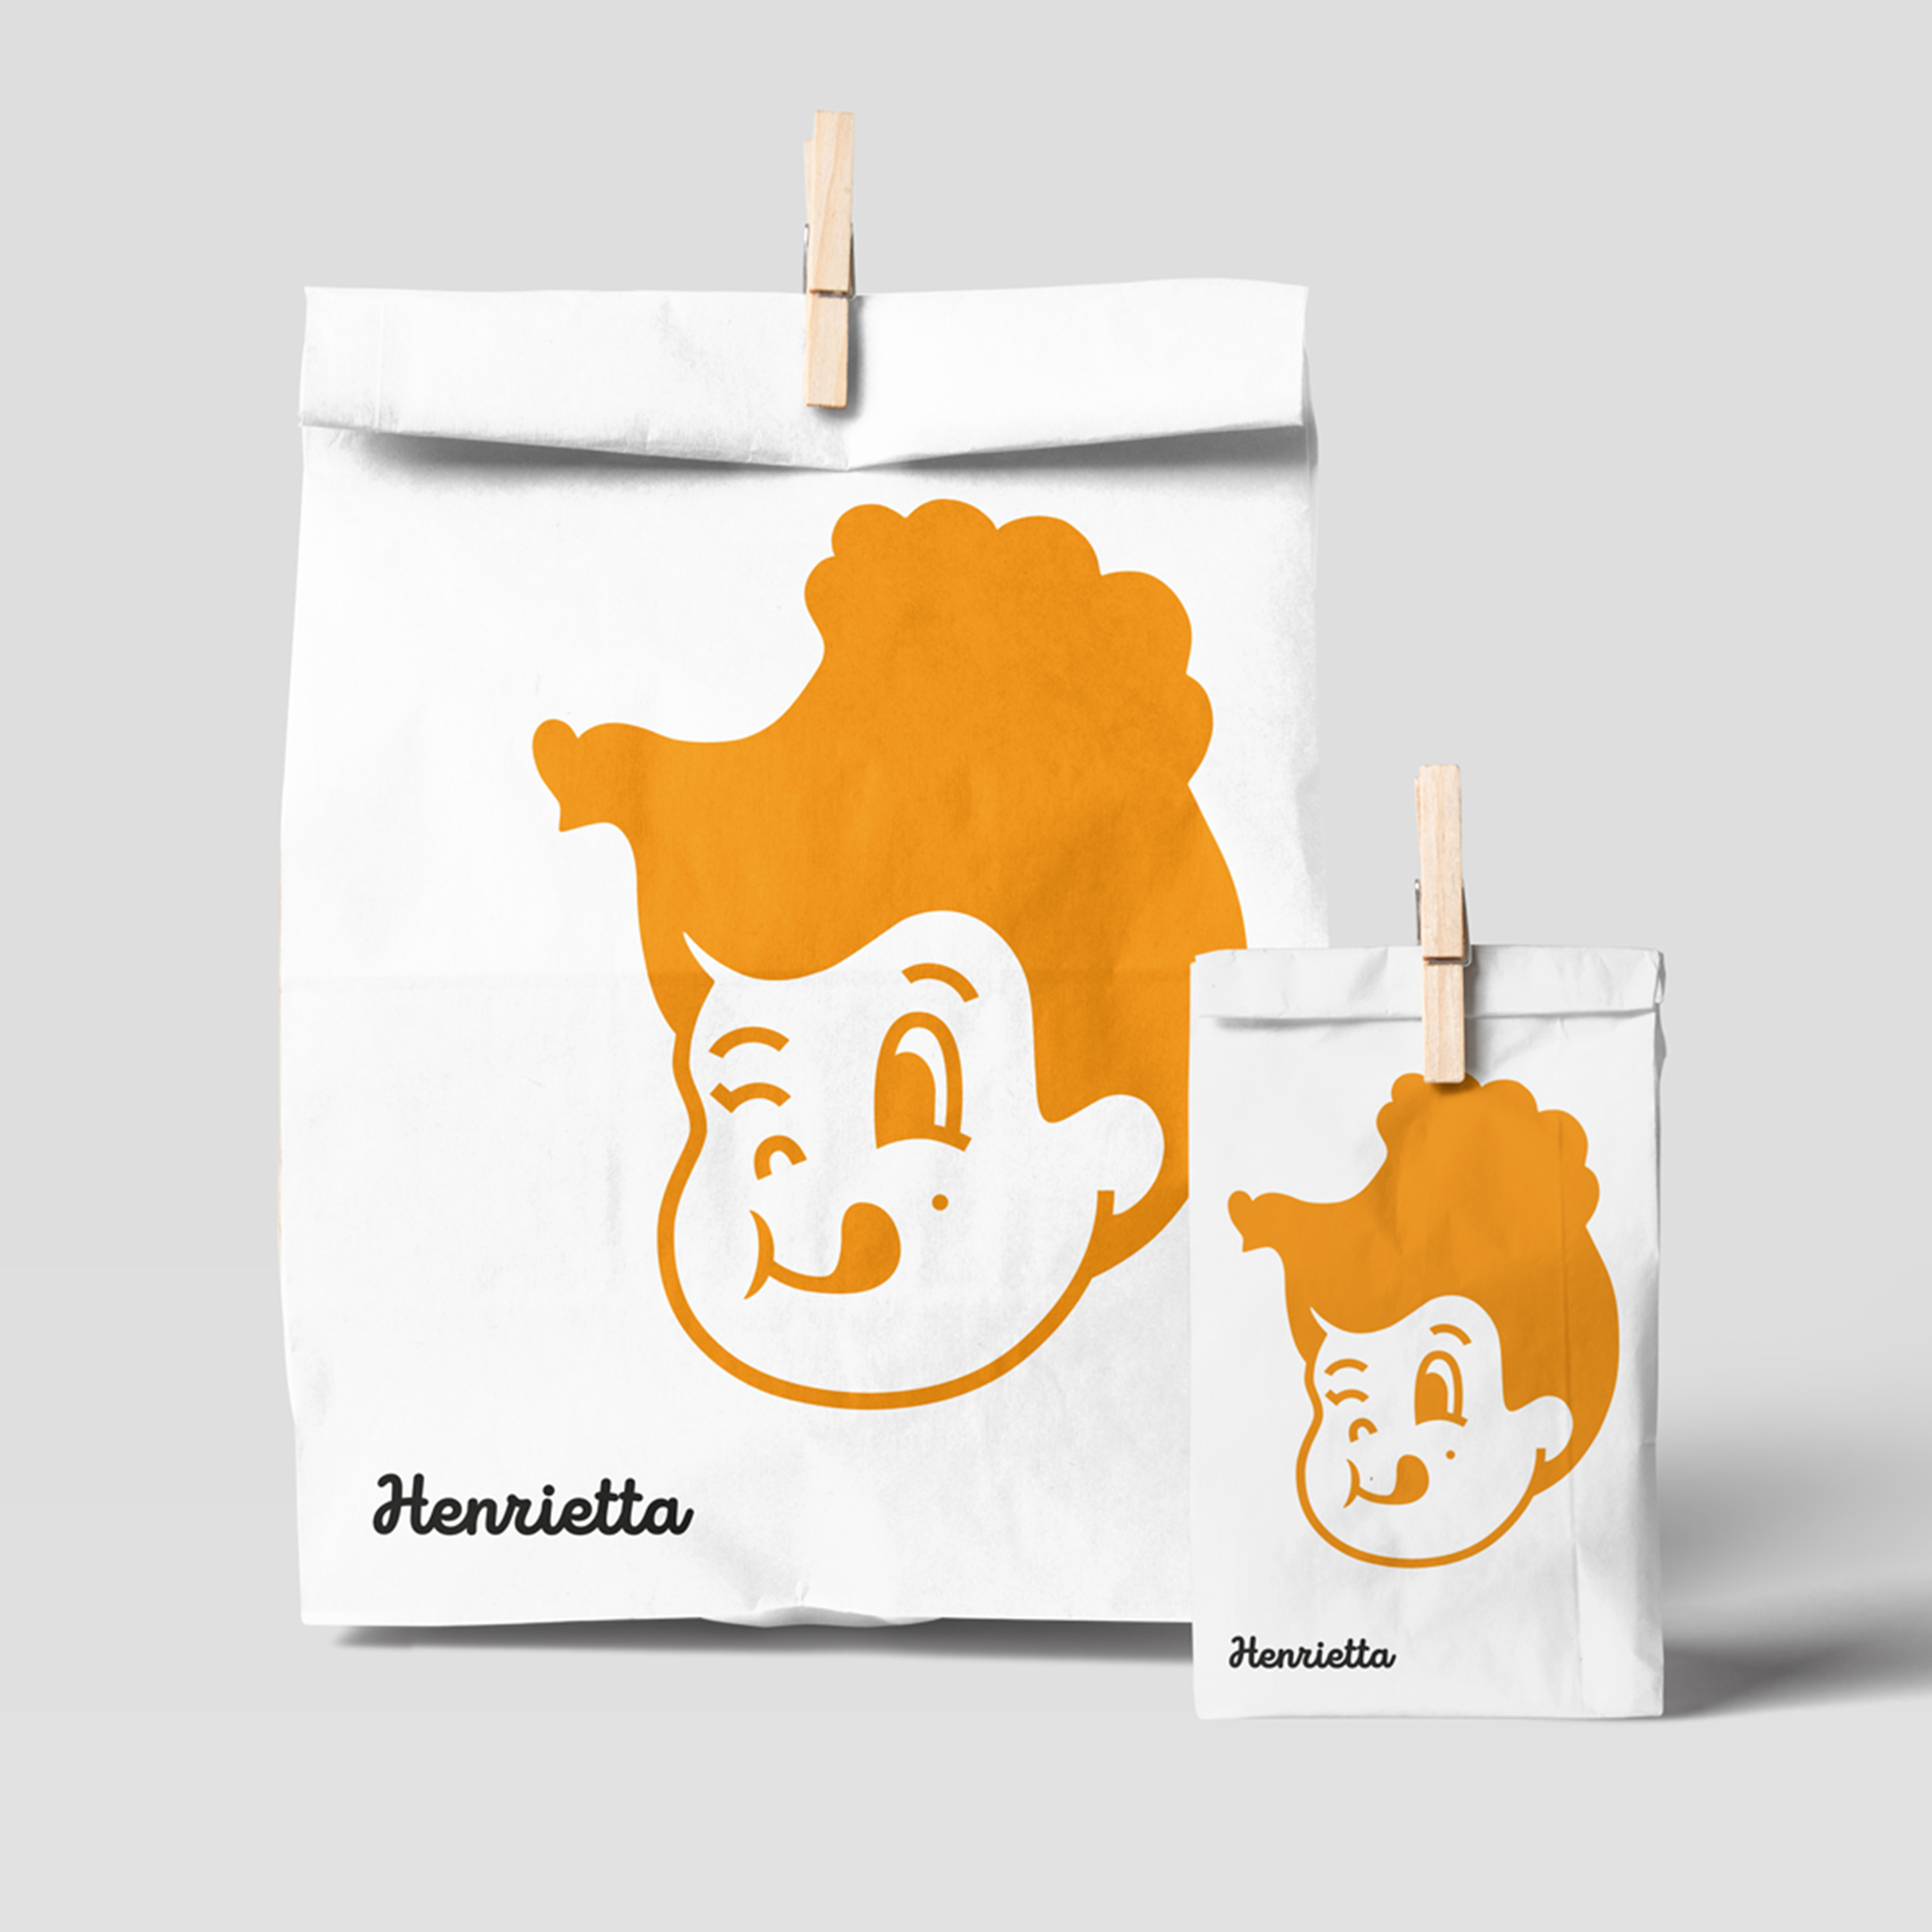 The Creative Method Design Nostalgic Brand Character for Henrietta Charcoal Chicken